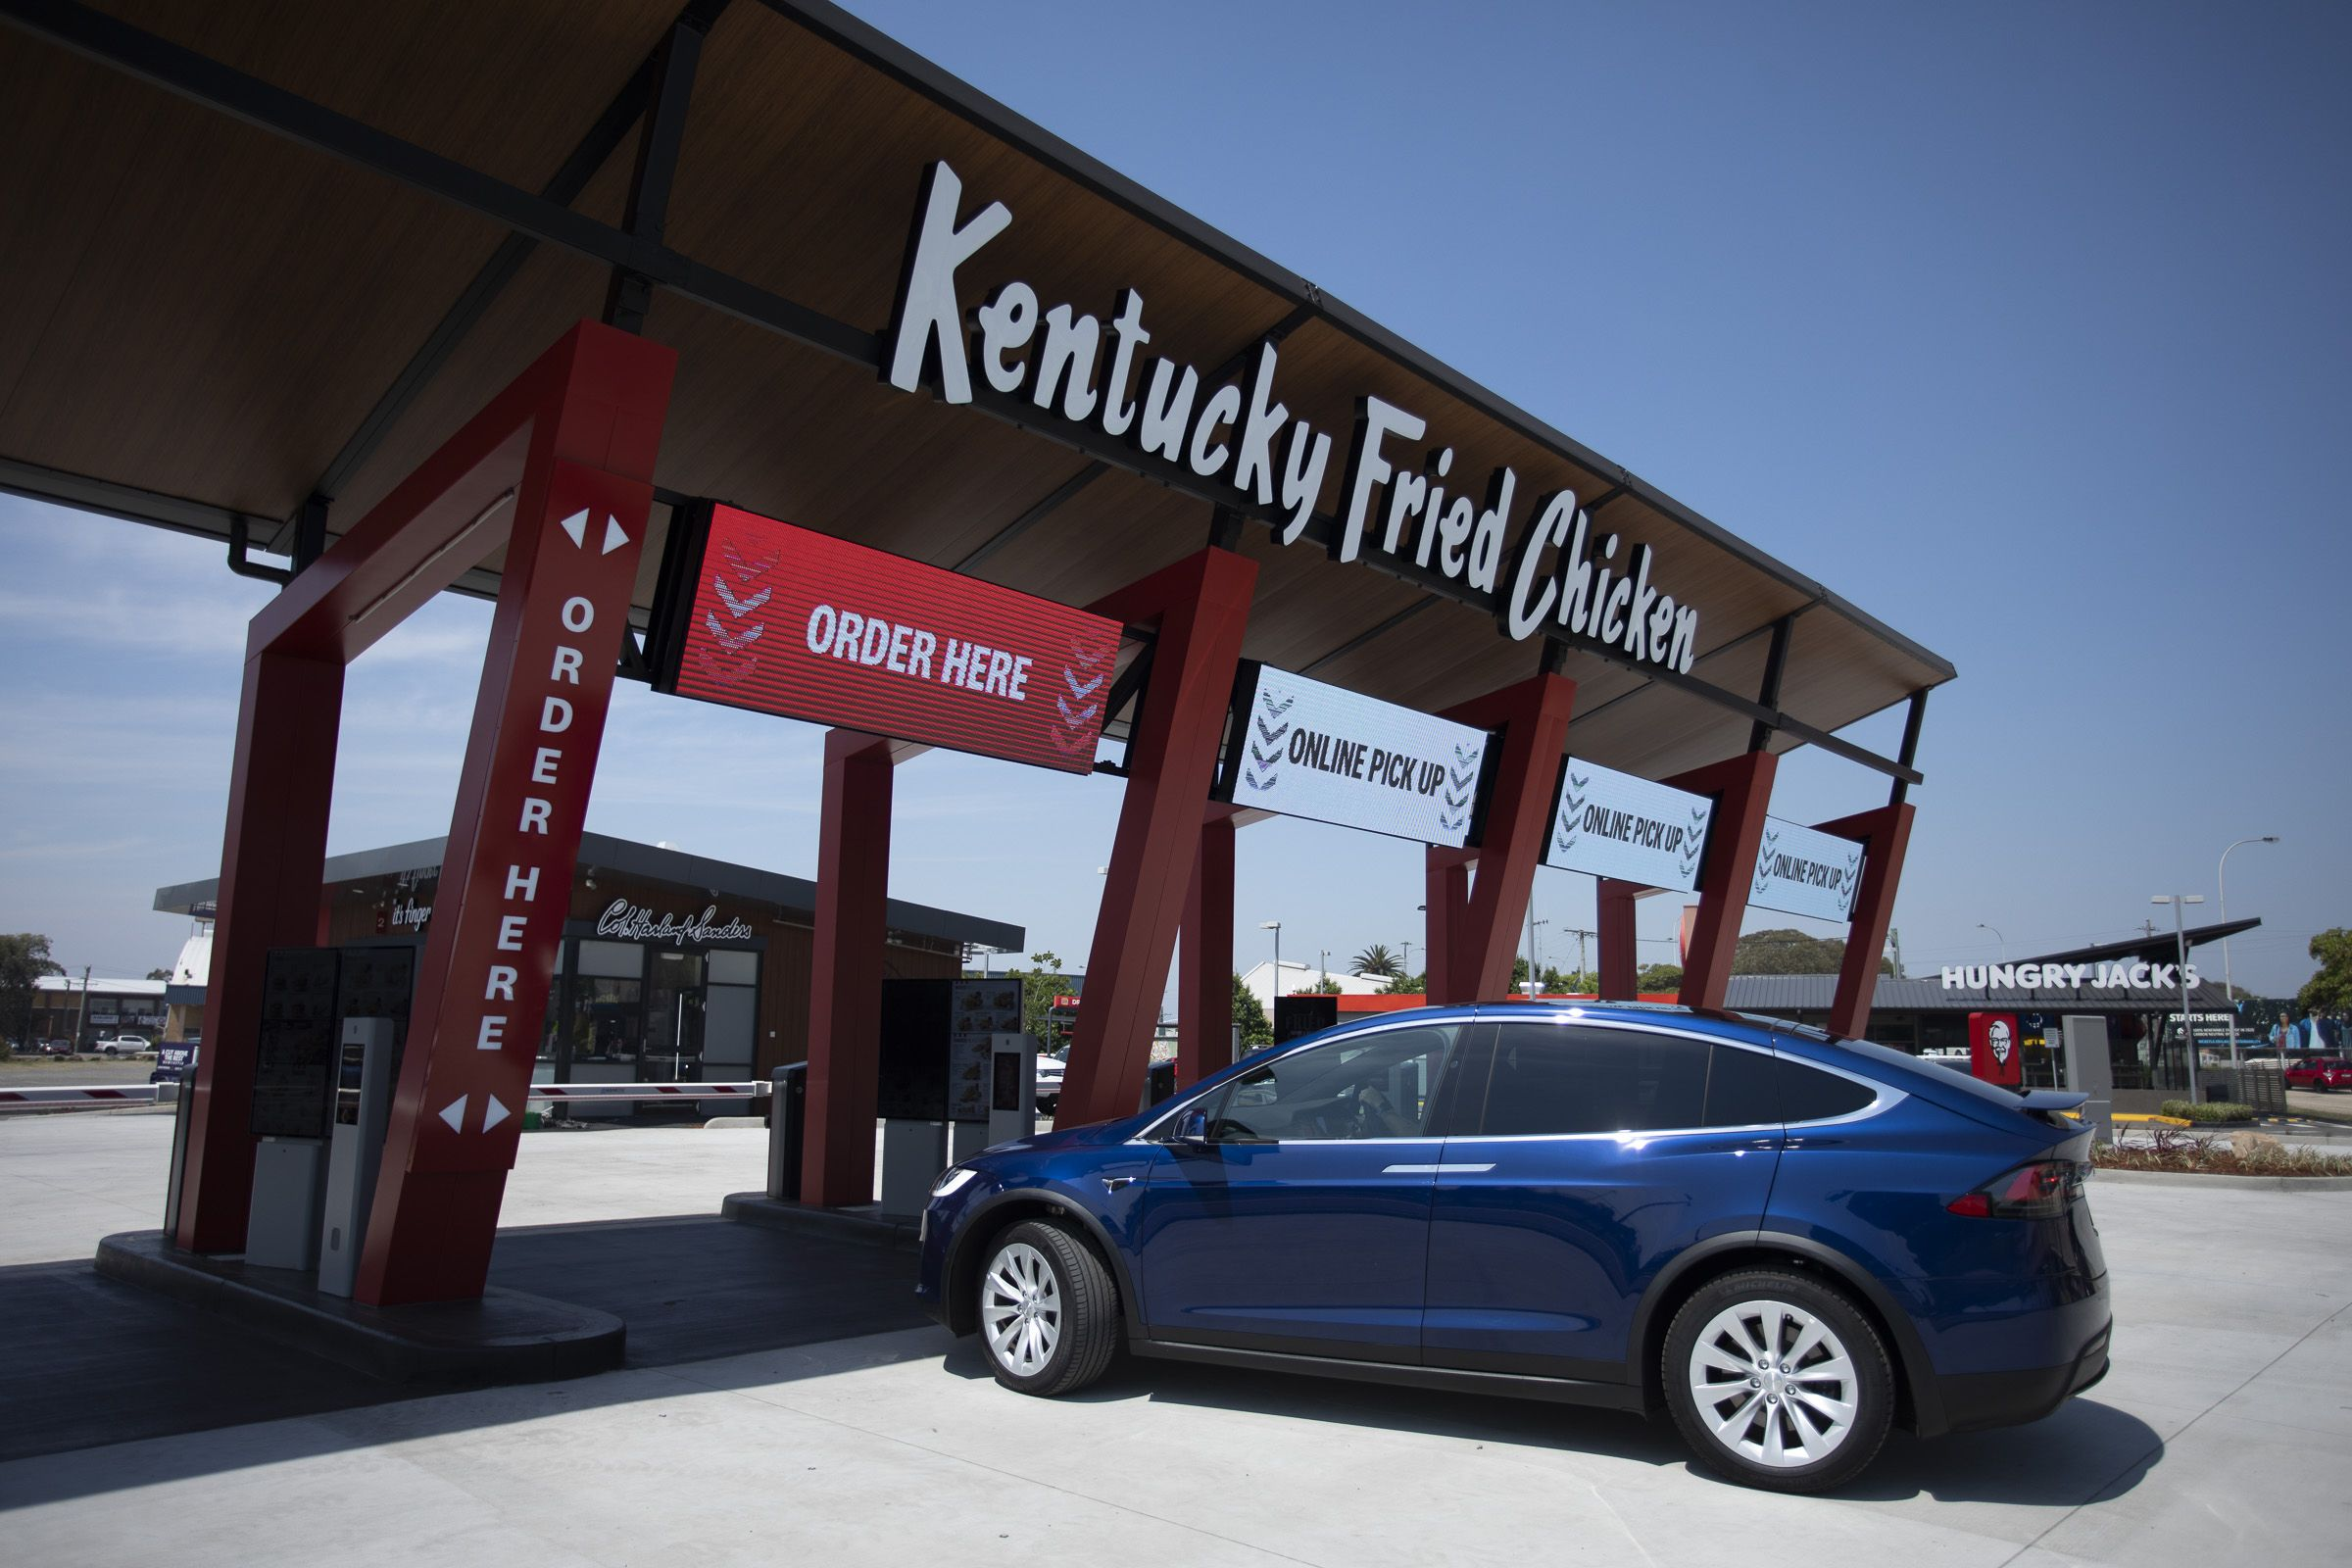 World-first KFC Drive-Through Only opens | Inside Franchise Business